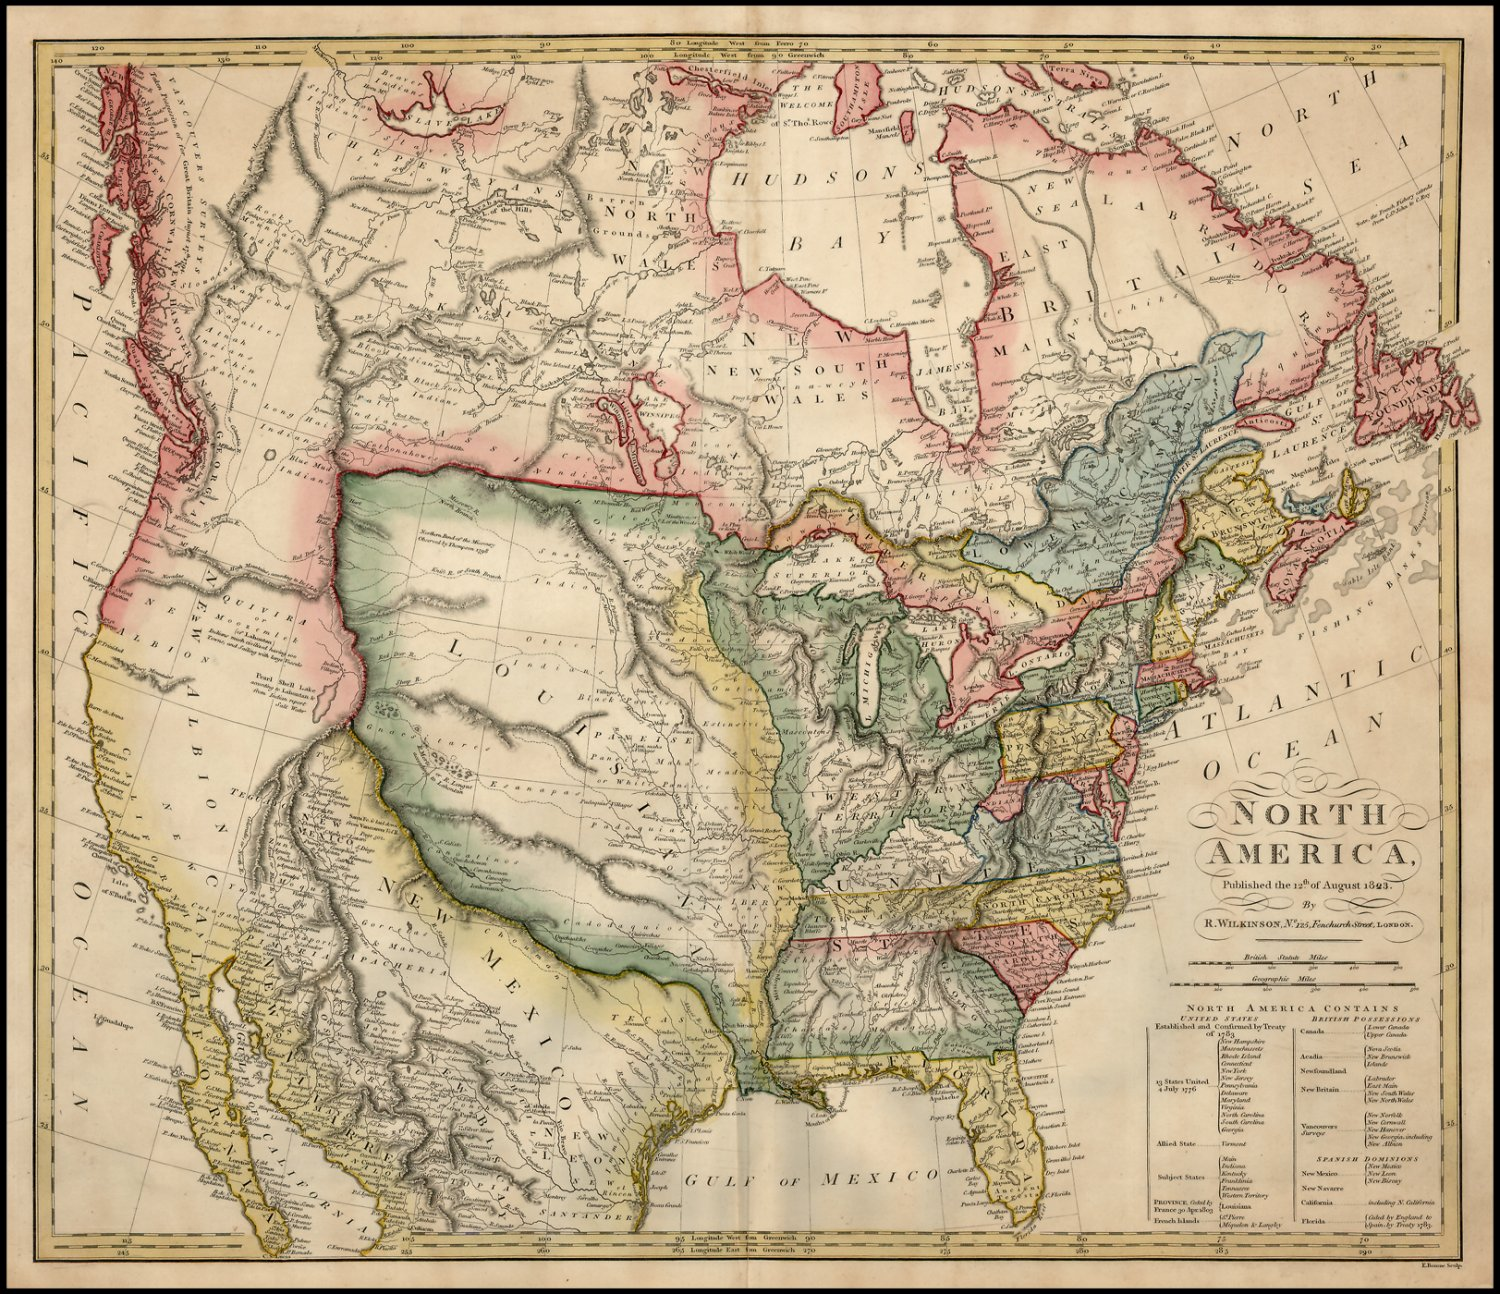 In This One Transaction The United States Essentially Doubled Its Size The Exact Border Between The Spanish Lands In New Spain And Louisiana South Of The